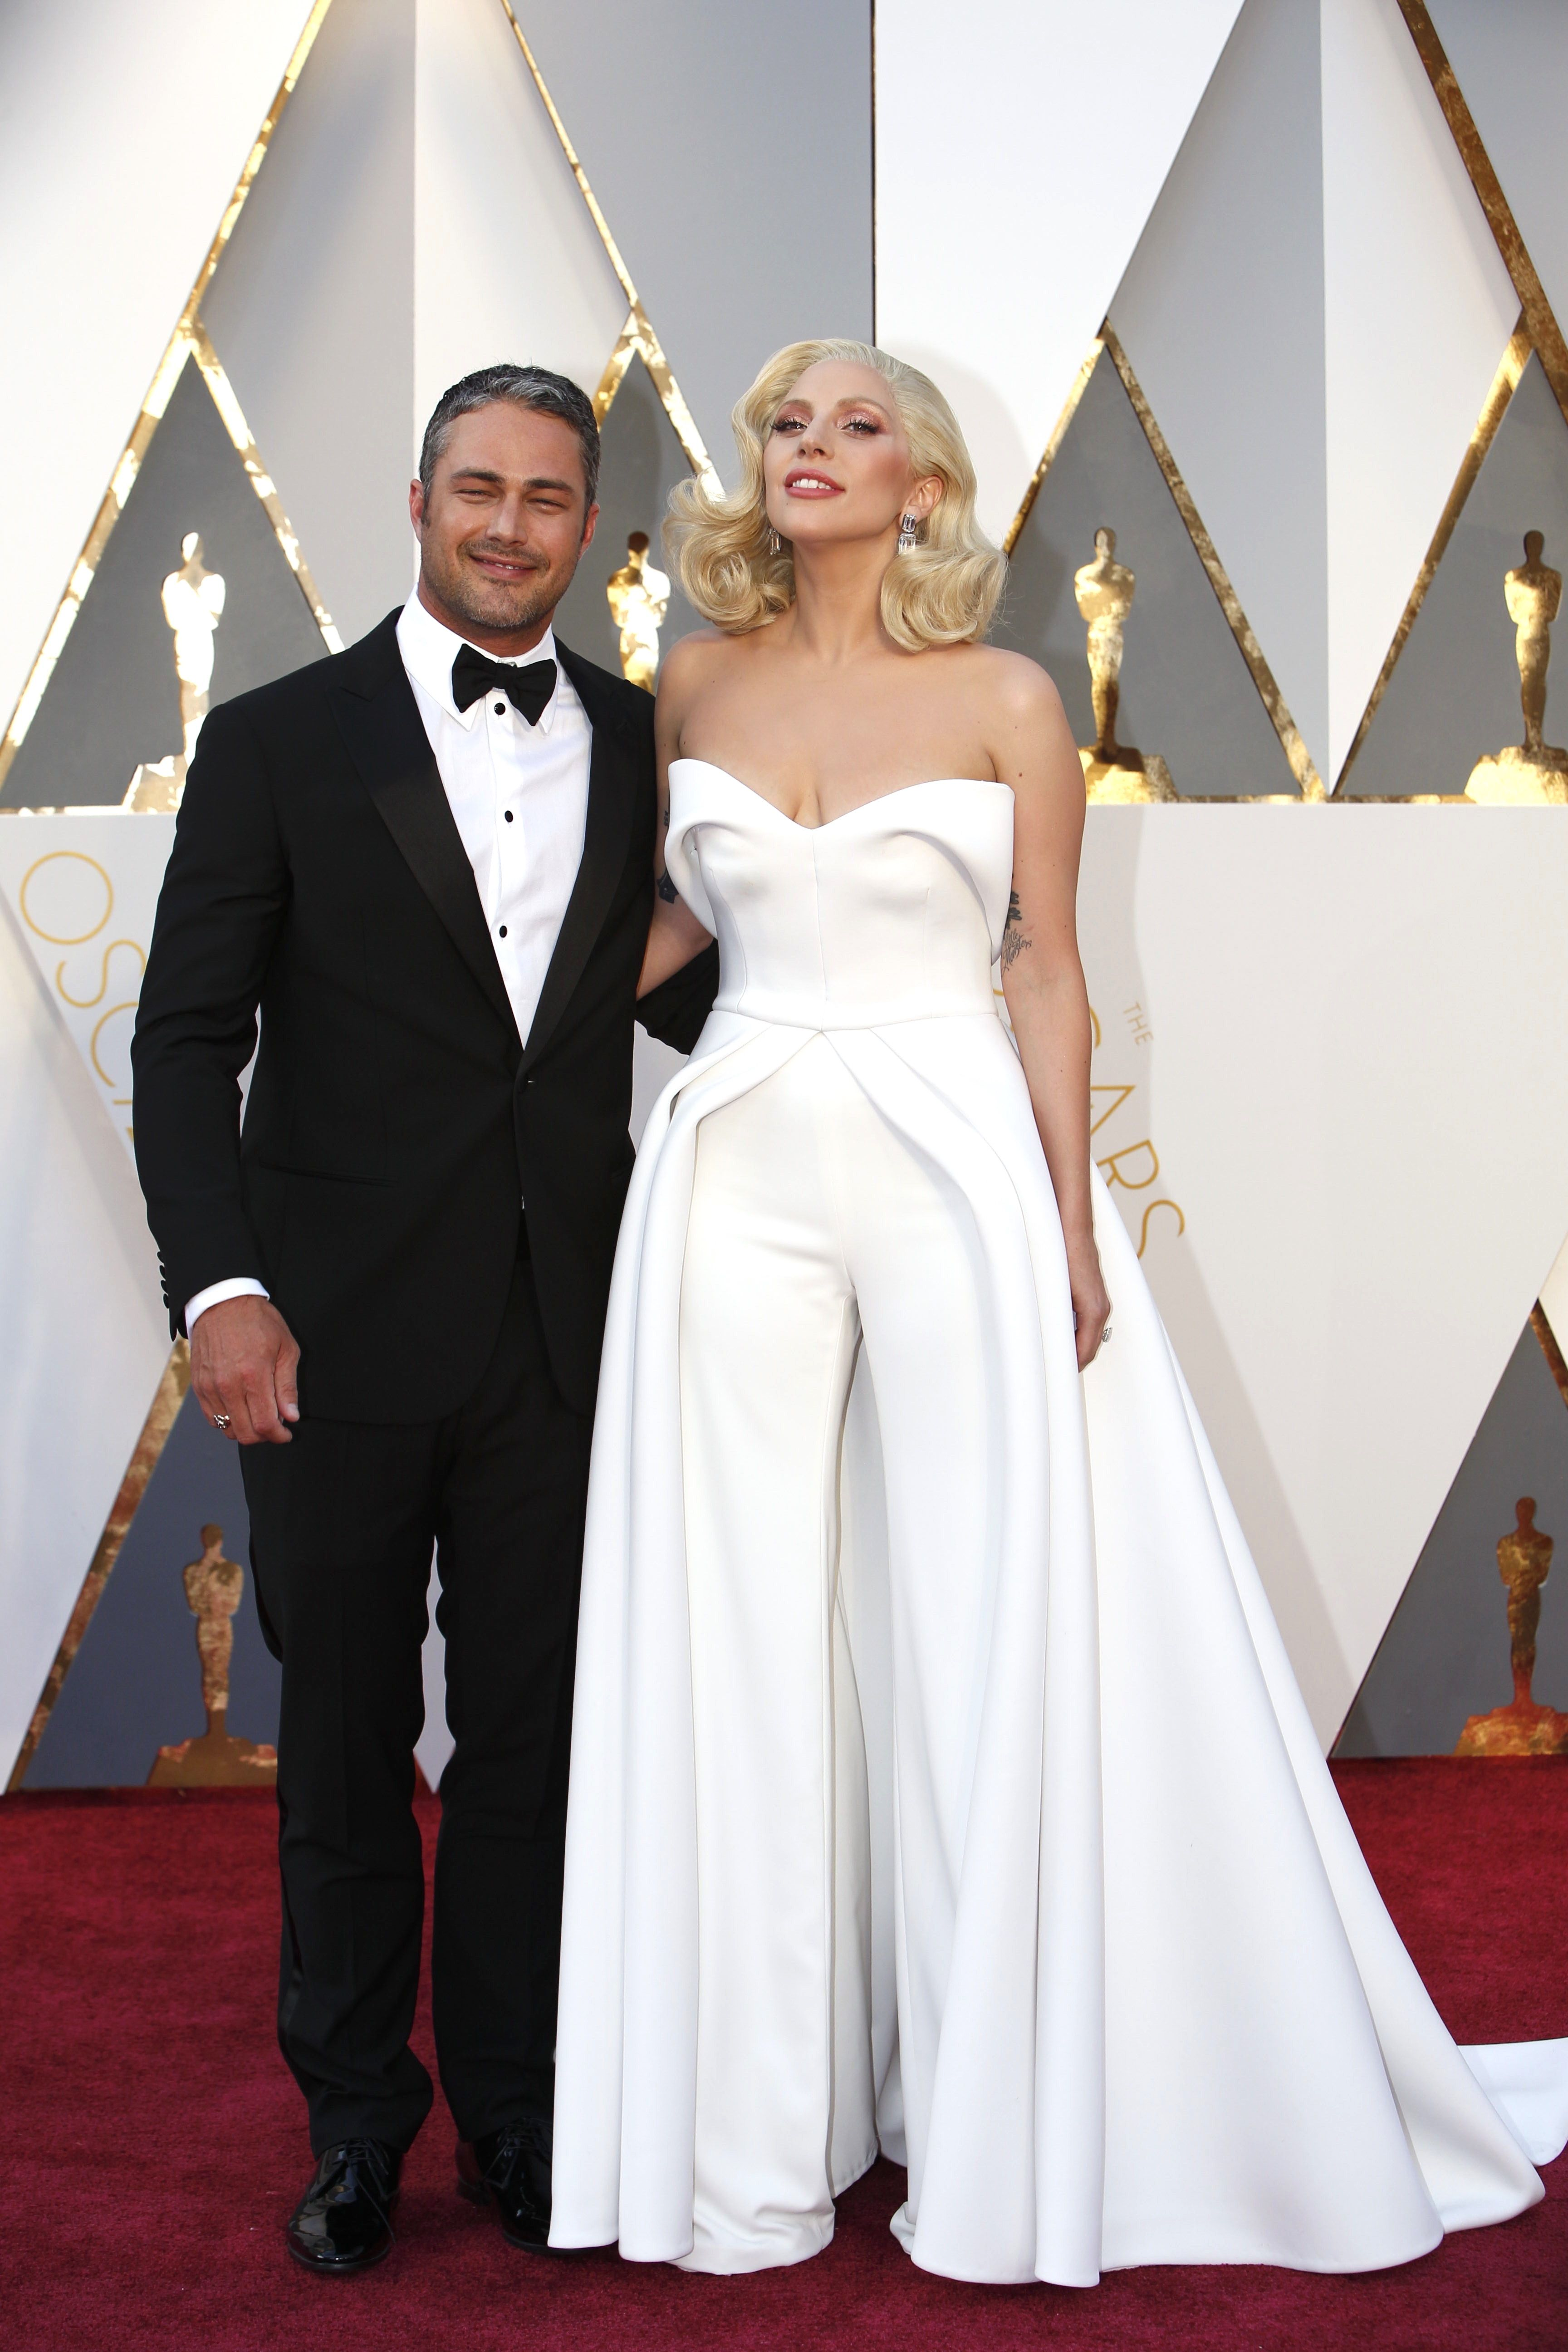 Lady Gaga arrives on the Oscars red carpet for the 88th Academy Awards  wearing a white jumpsuit by Brandon Maxwell. 7ae4f3d70